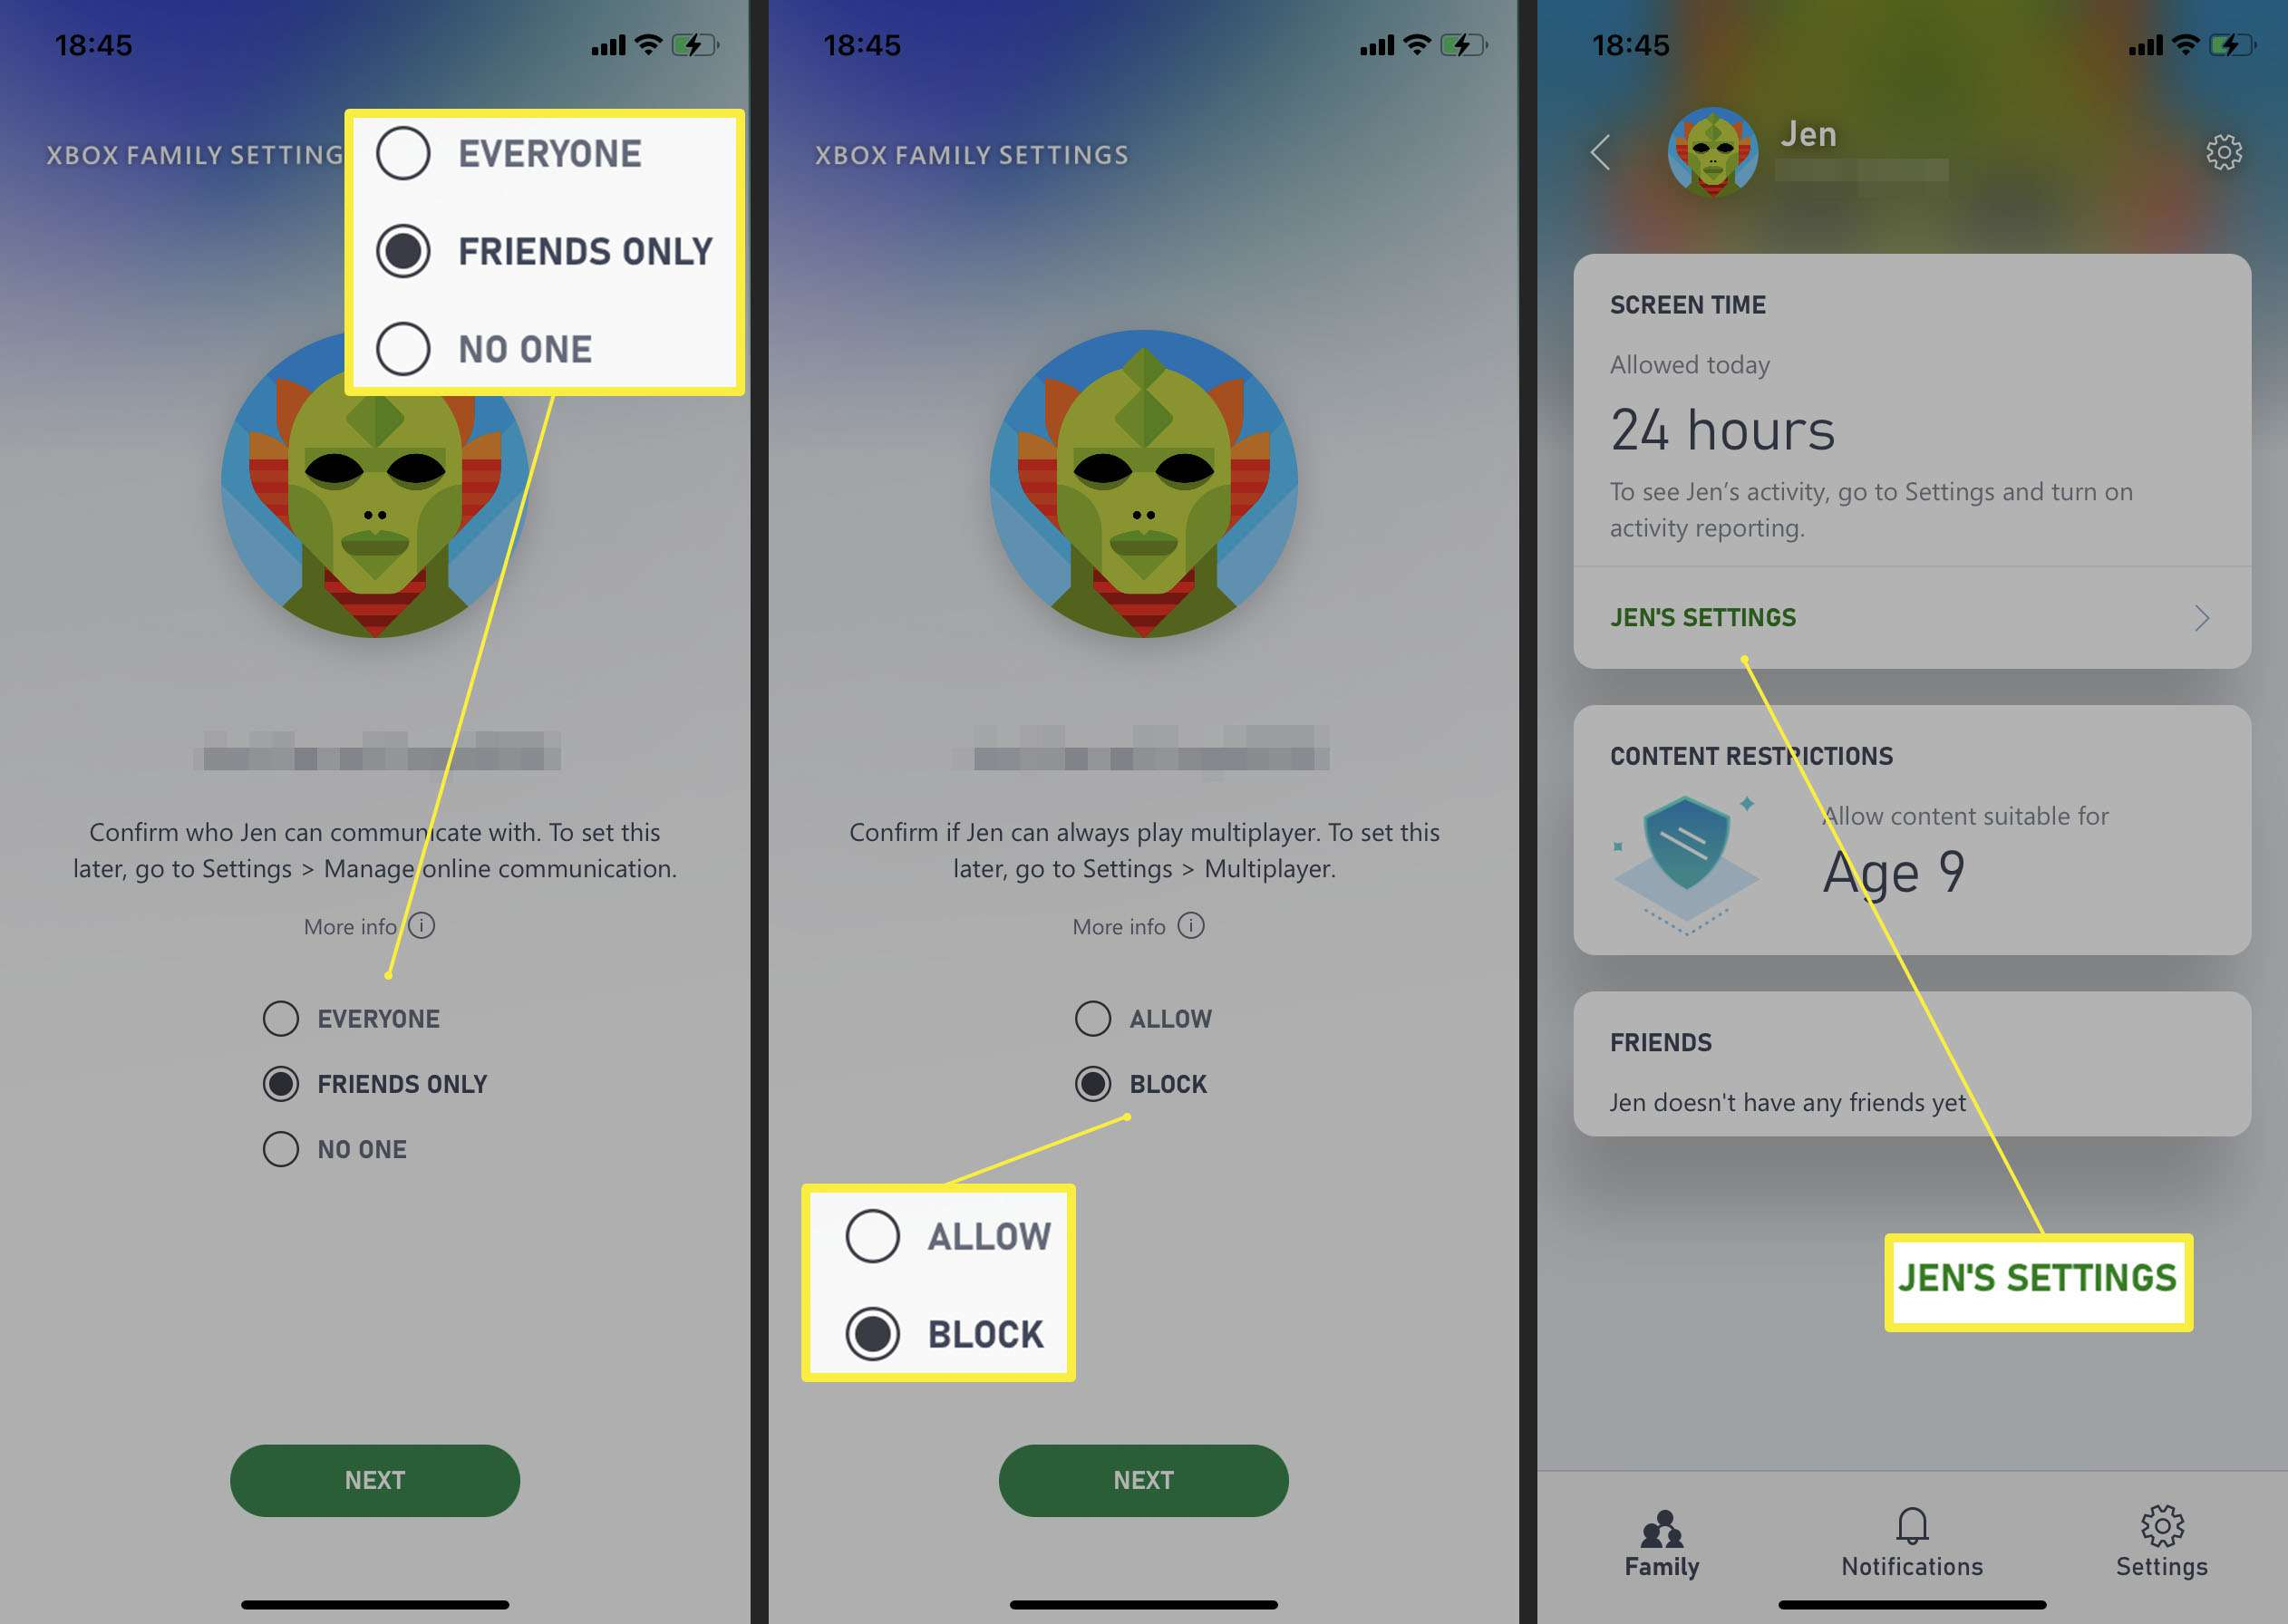 Adding safety settings to a family member in the Xbox Family Settings app